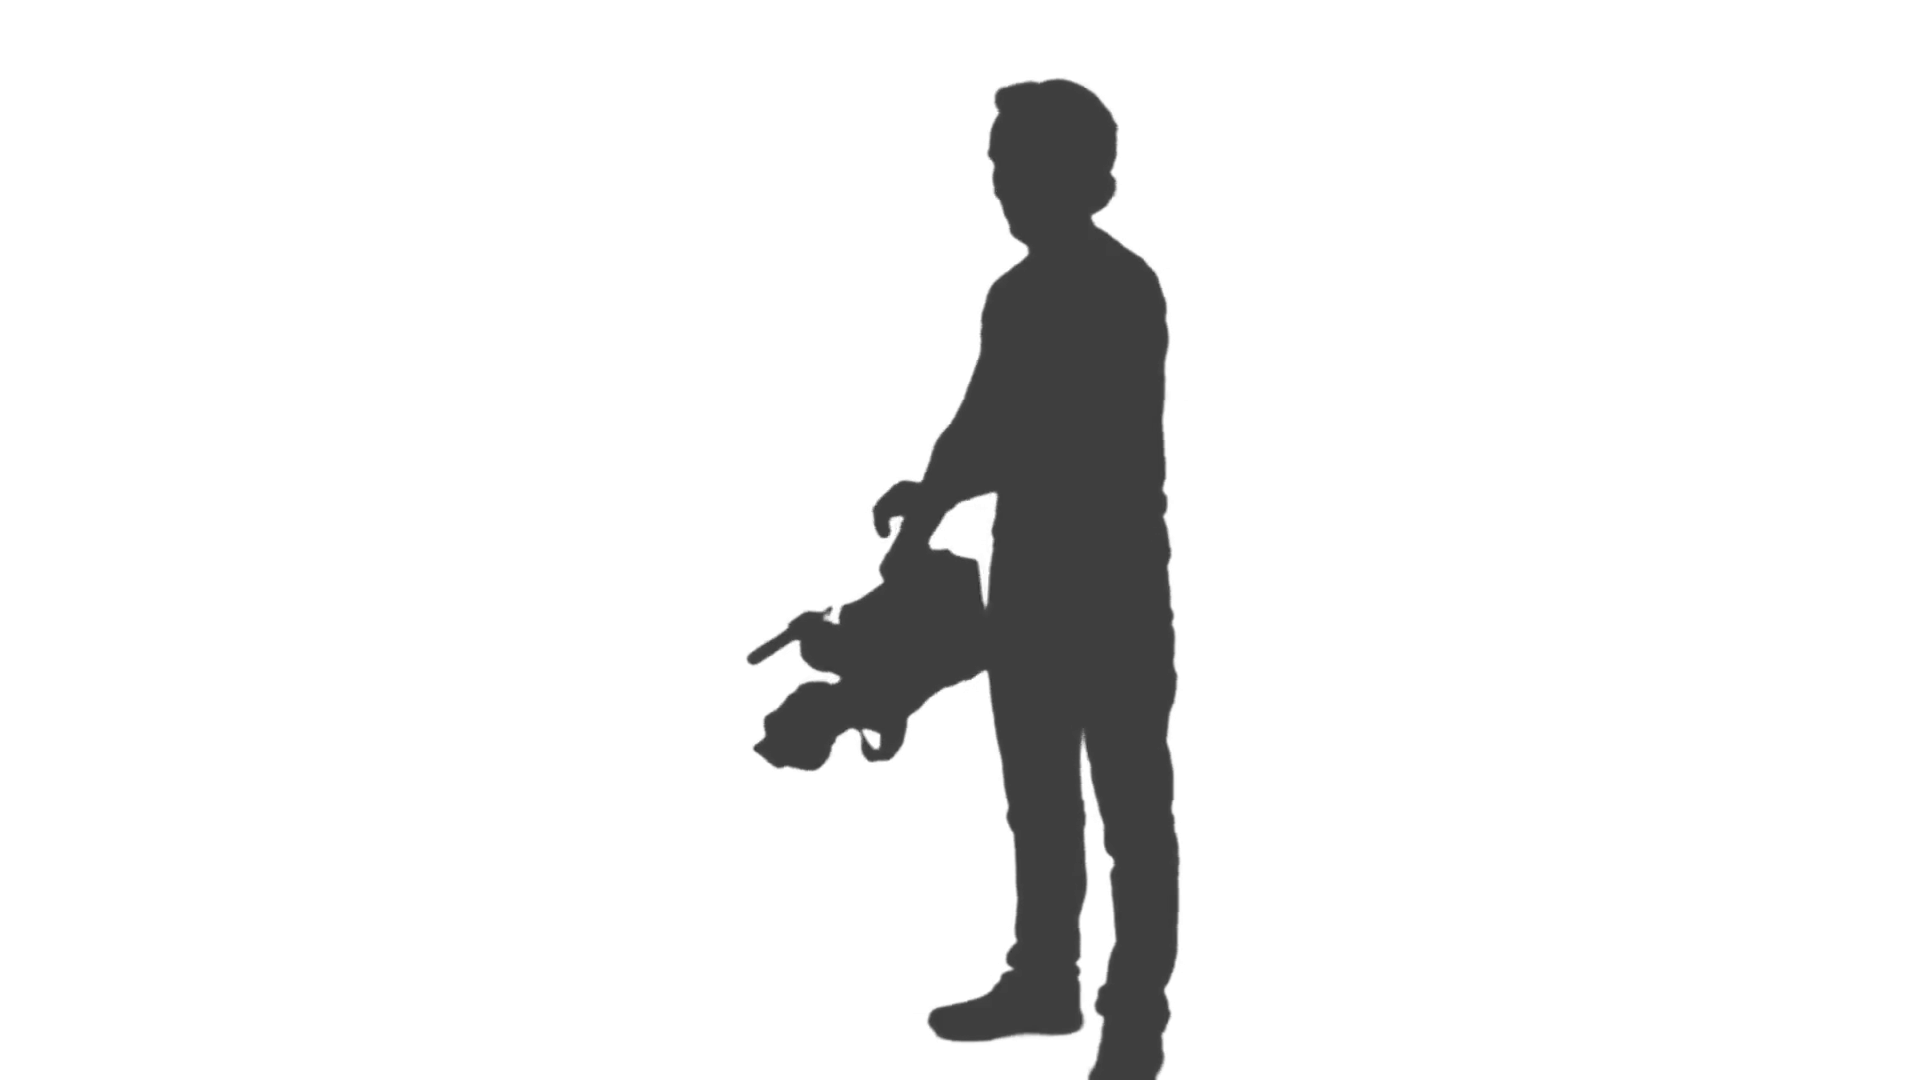 1920x1080 Silhouette Of Cameraman With A Camera Standing And Shooting A Film